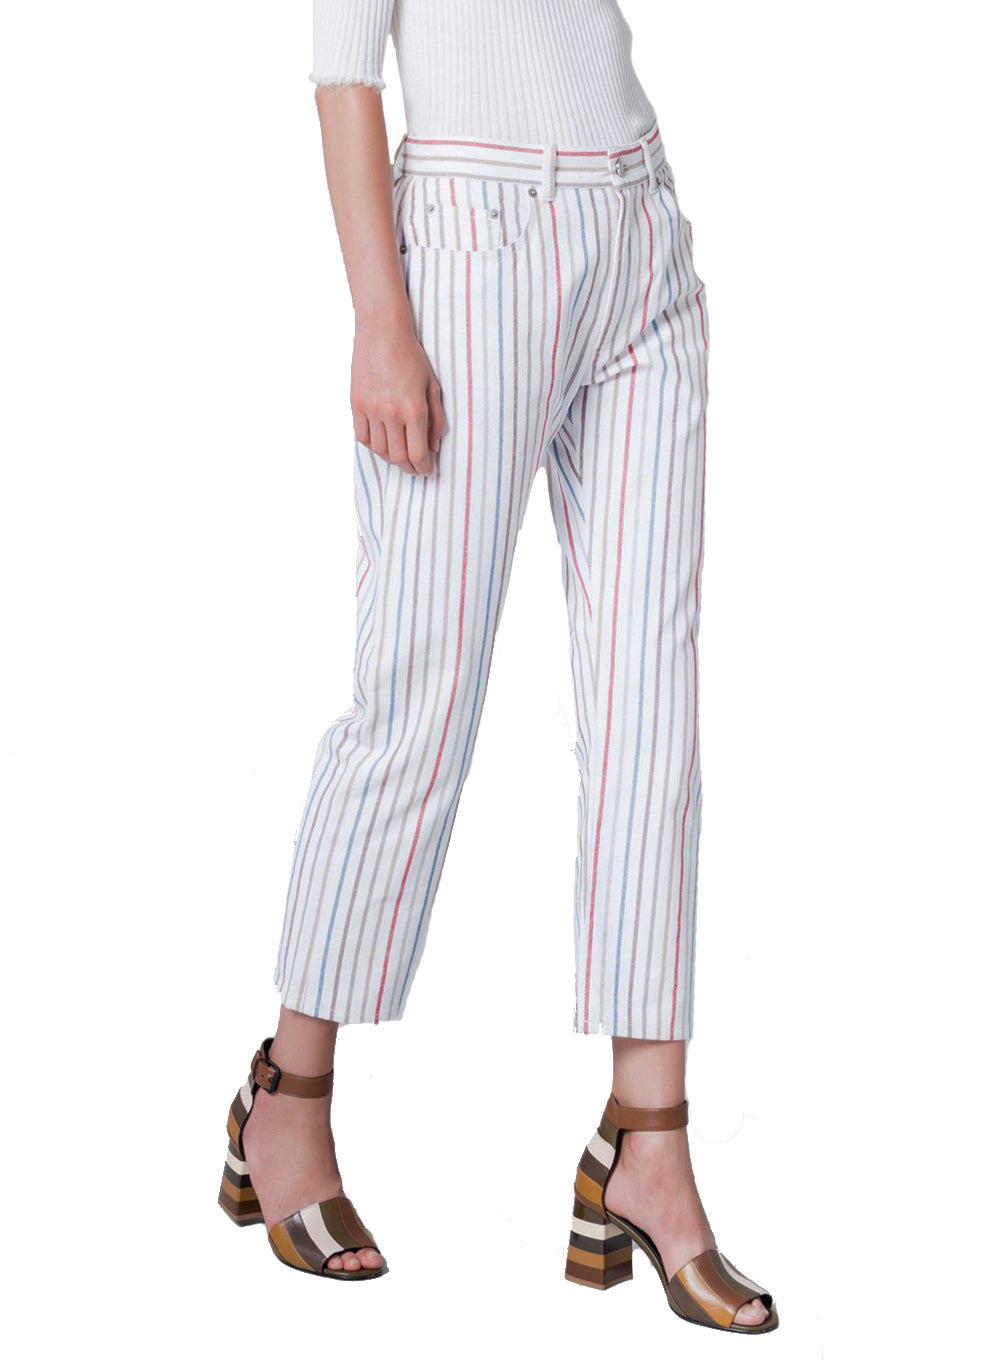 SONIA RYKIEL | Striped Cotton Boyfriend-Fit Jeans